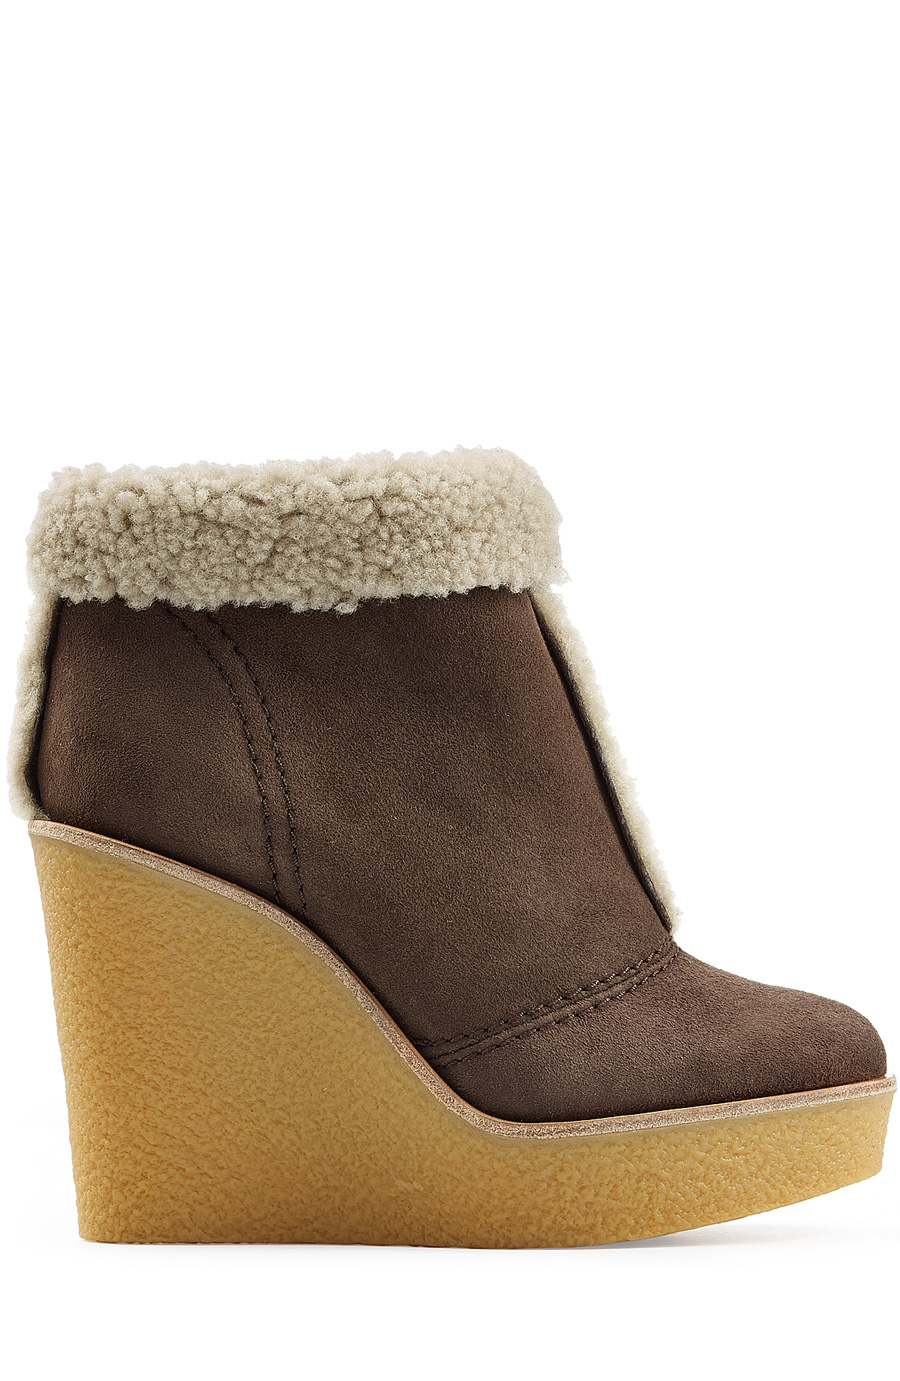 SHEARLING-LINED SUEDE WEDGE ANKLE BOOTS